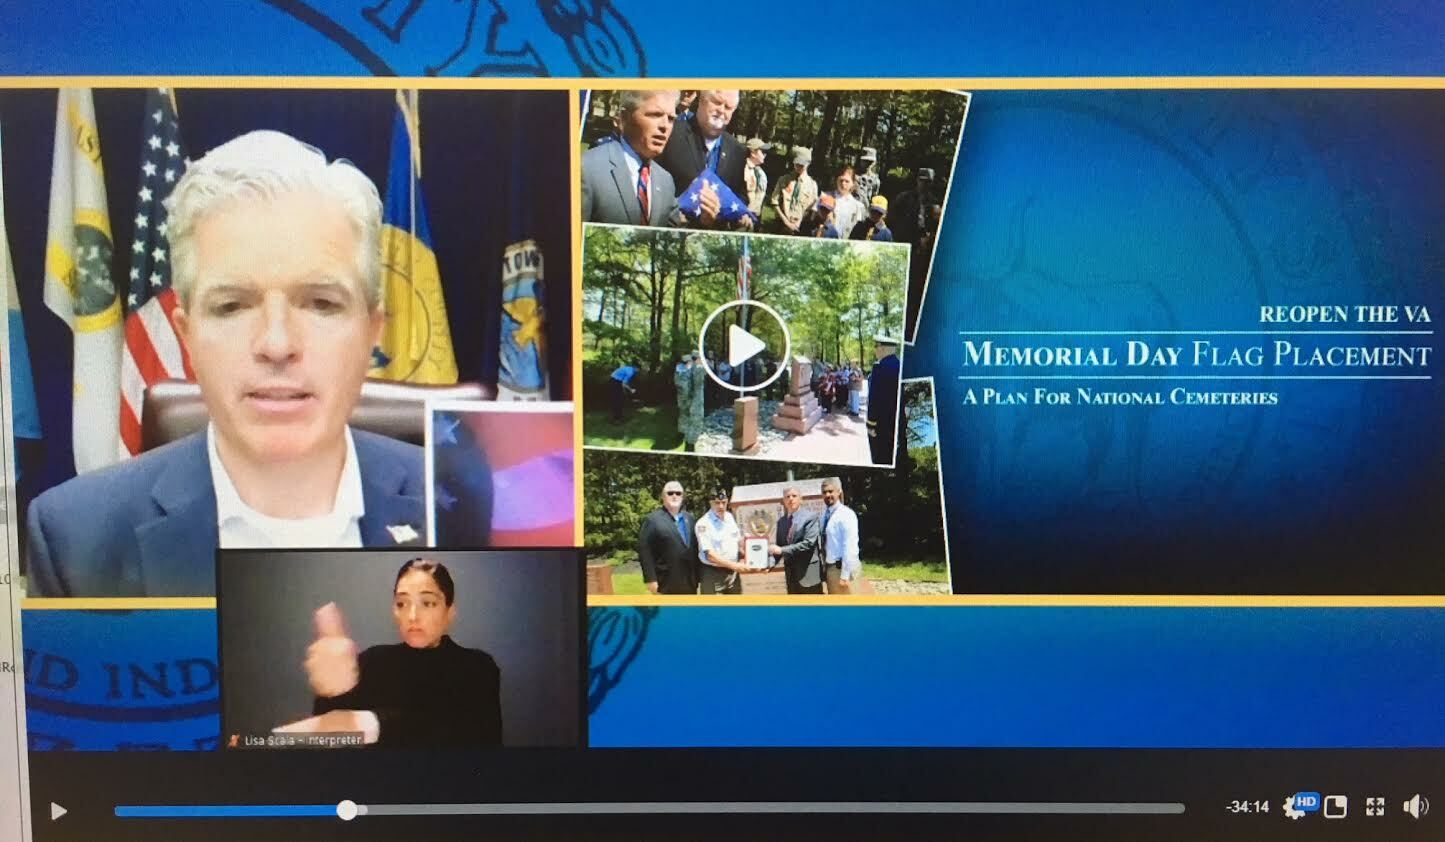 Suffolk County Executive Steve Bellone discussed flag placement plans during his daily media update Tuesday.